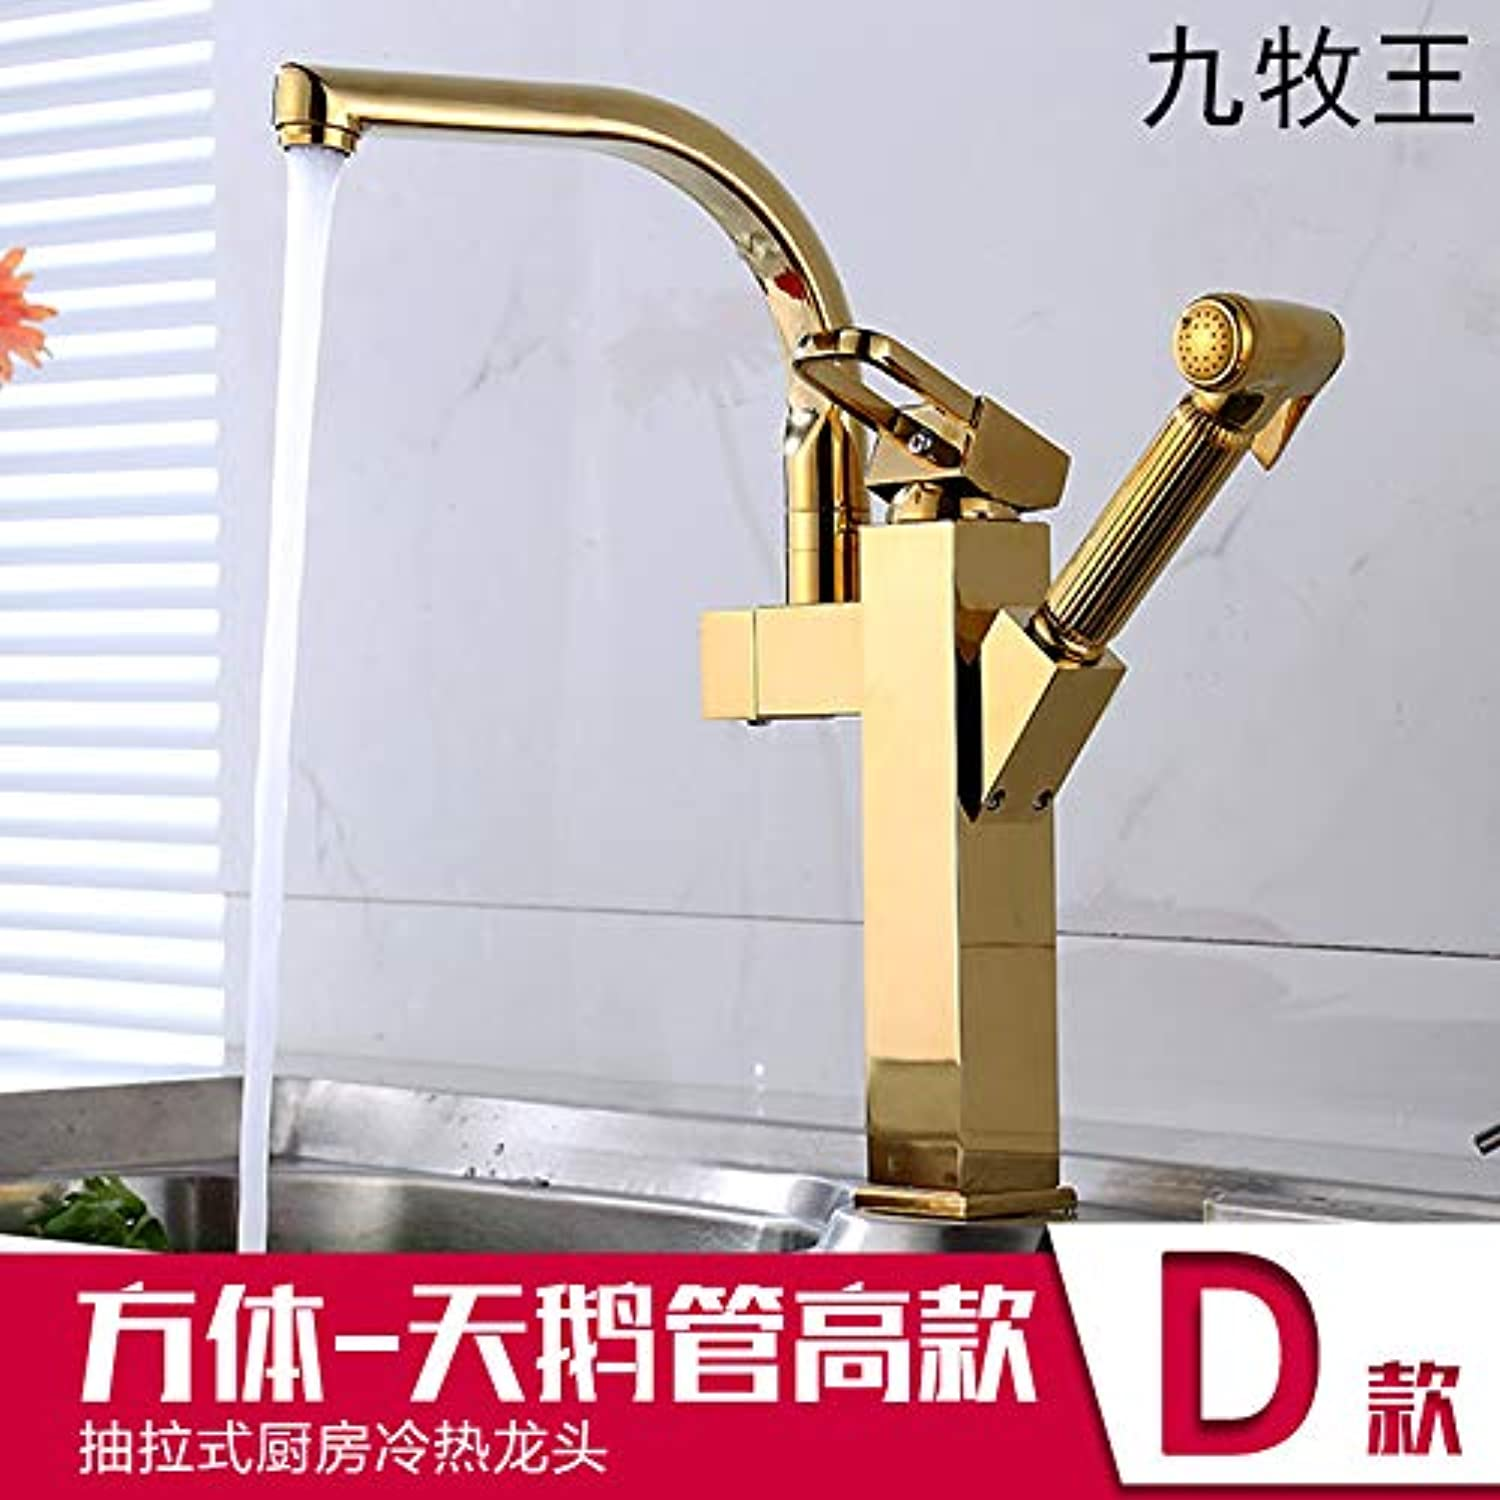 Bijjaladeva Bijjaladeva Bijjaladeva Antique Kitchen Sink Mixer Tap Pull Kitchen Faucet hot and Cold Dishes and wash Basin Full Brass Telescope to redate The Dish Washing Pool Sink Mixer Deluxe gold Plated D, high) abd216